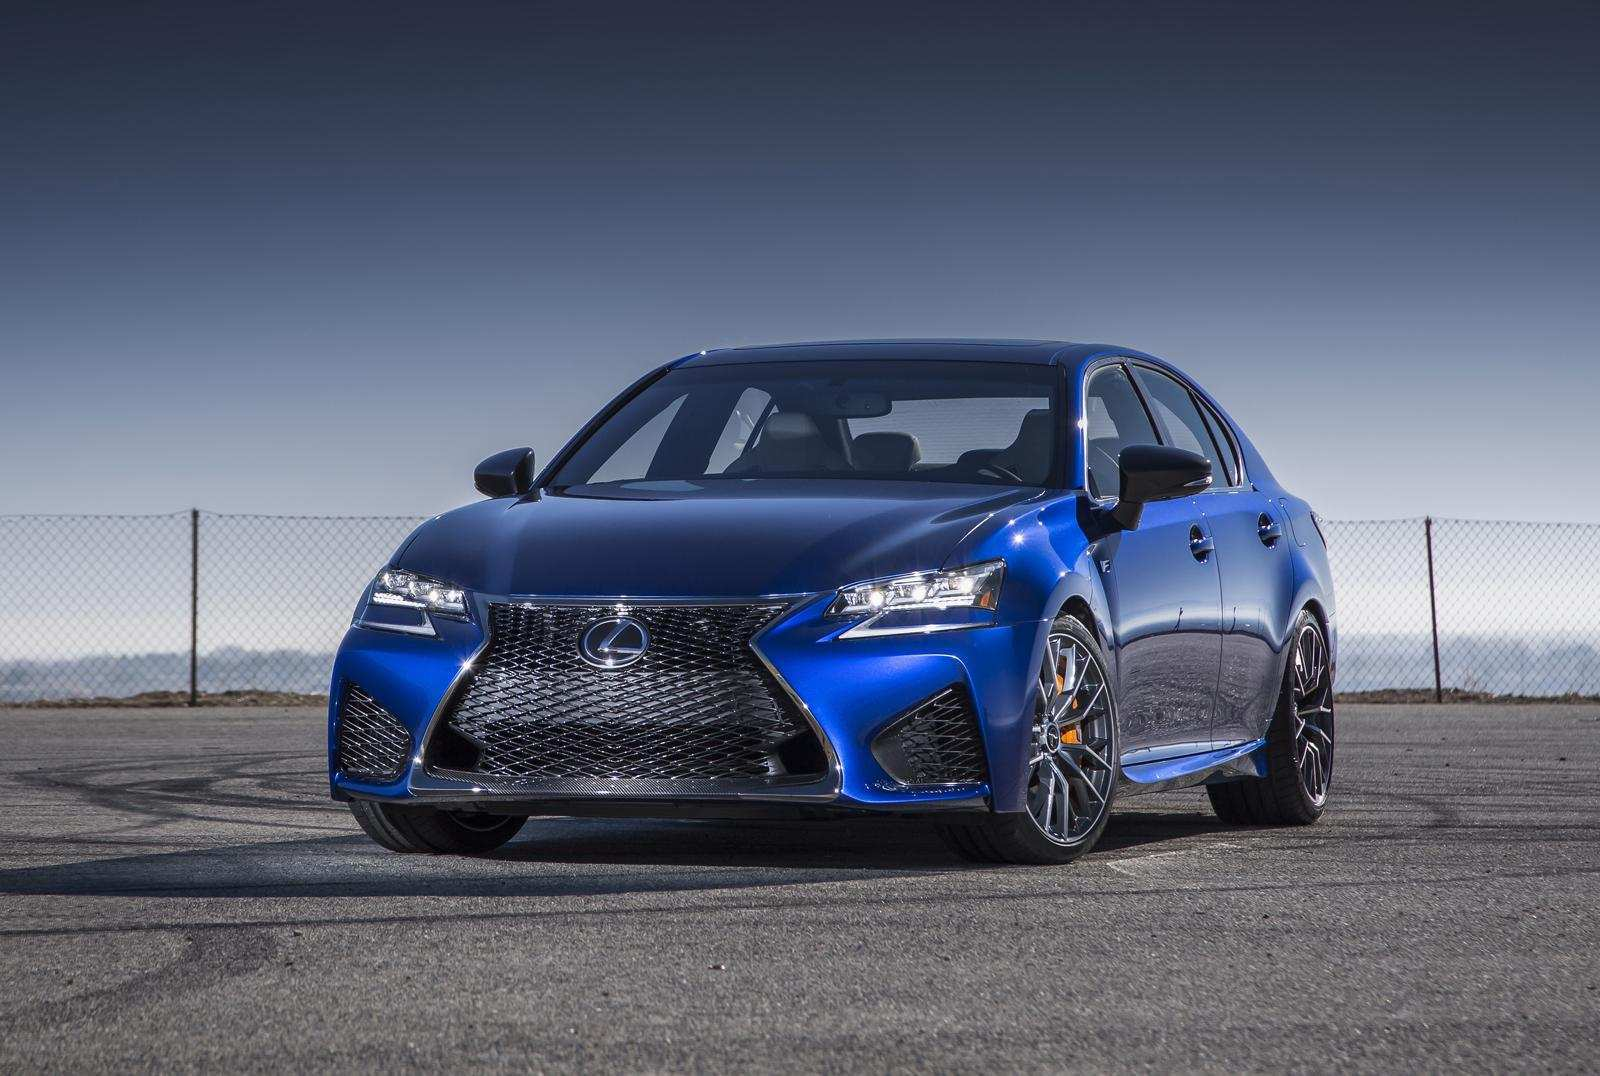 42 All New 2019 Lexus Gs Twin Turbo Overview with 2019 Lexus Gs Twin Turbo